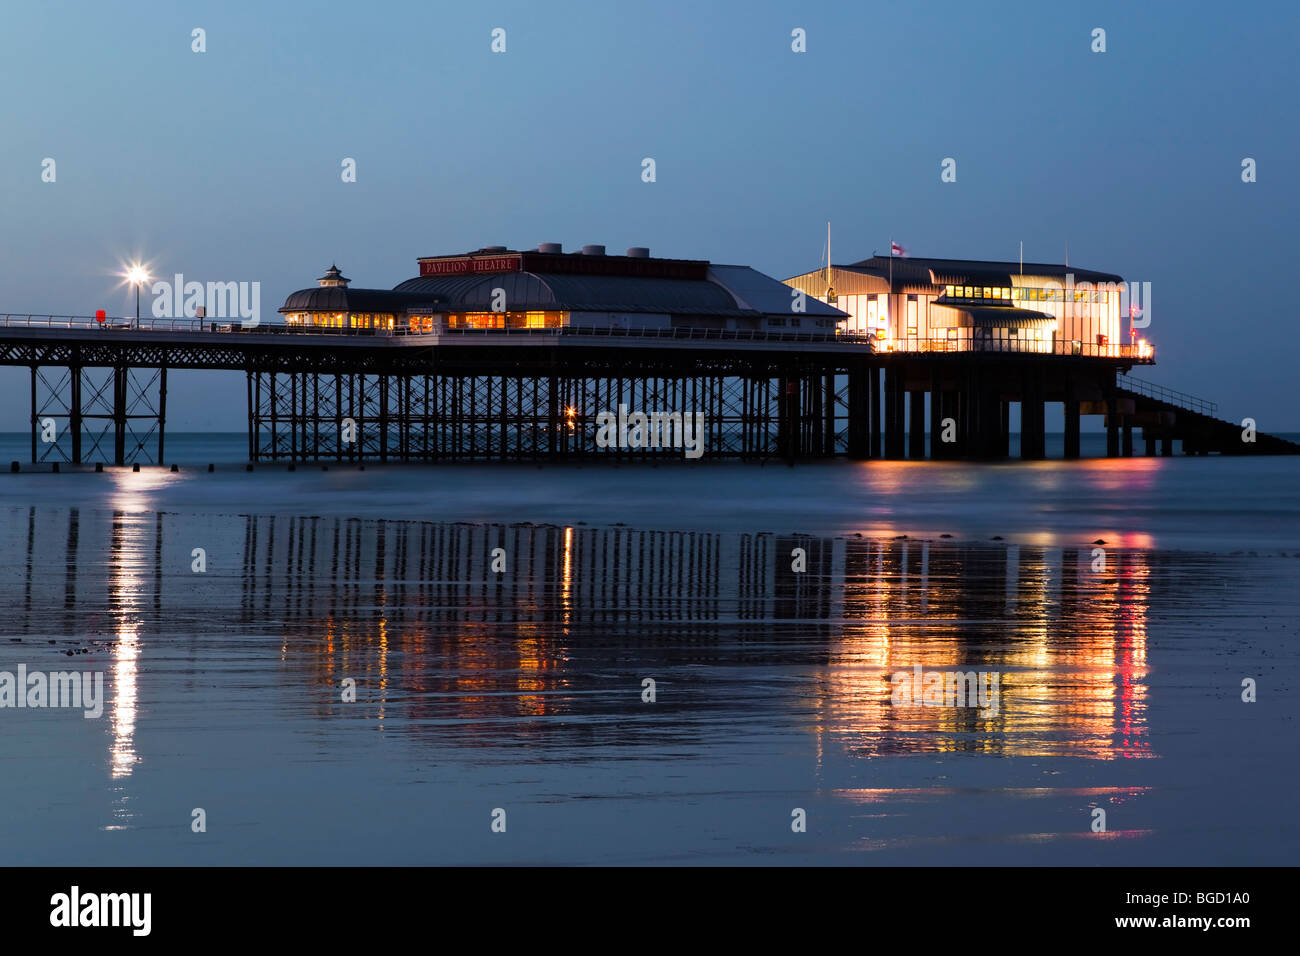 Evenings reflections in the wet sands - Cromer Pier in North Norfolk - Stock Image